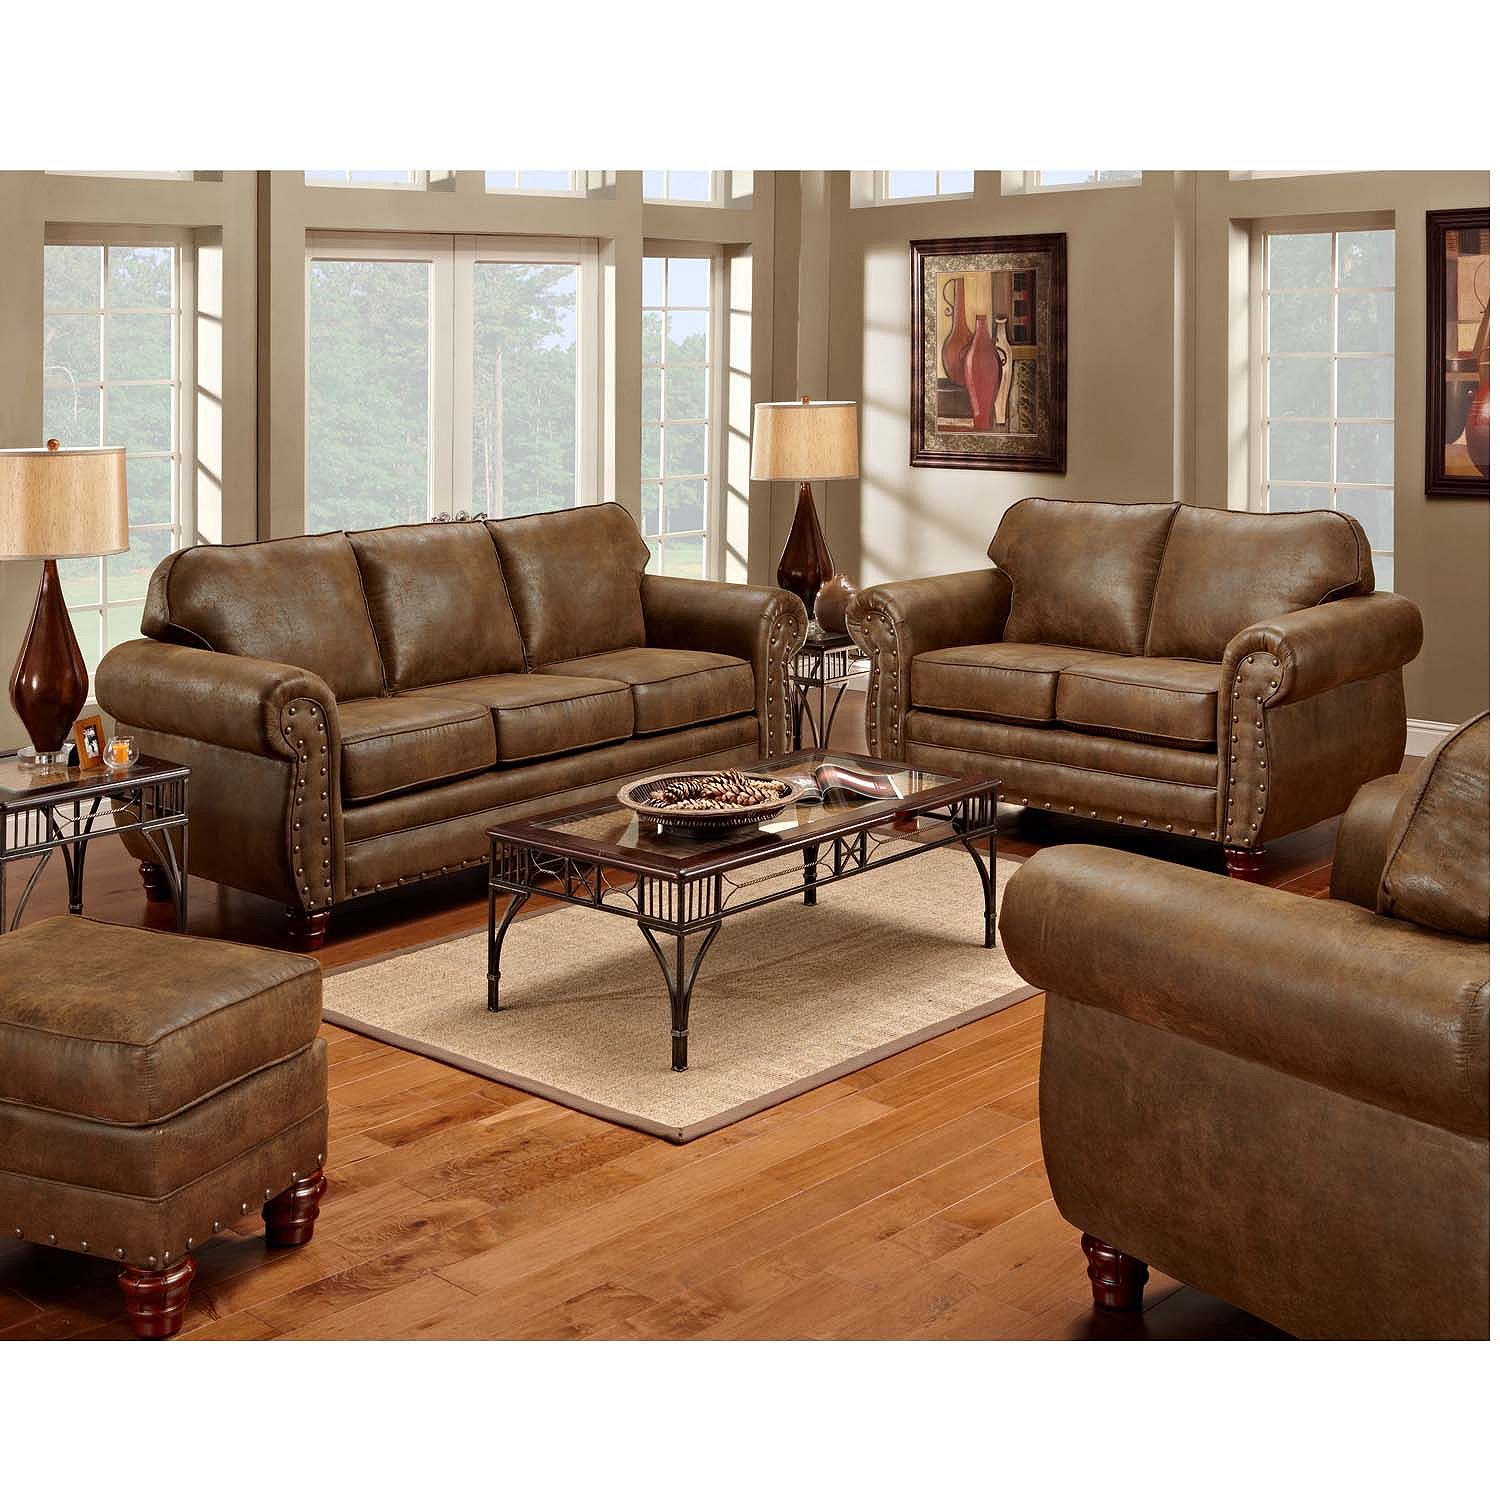 furniture chairs living room top 4 comfortable chairs for living room homesfeed 15996